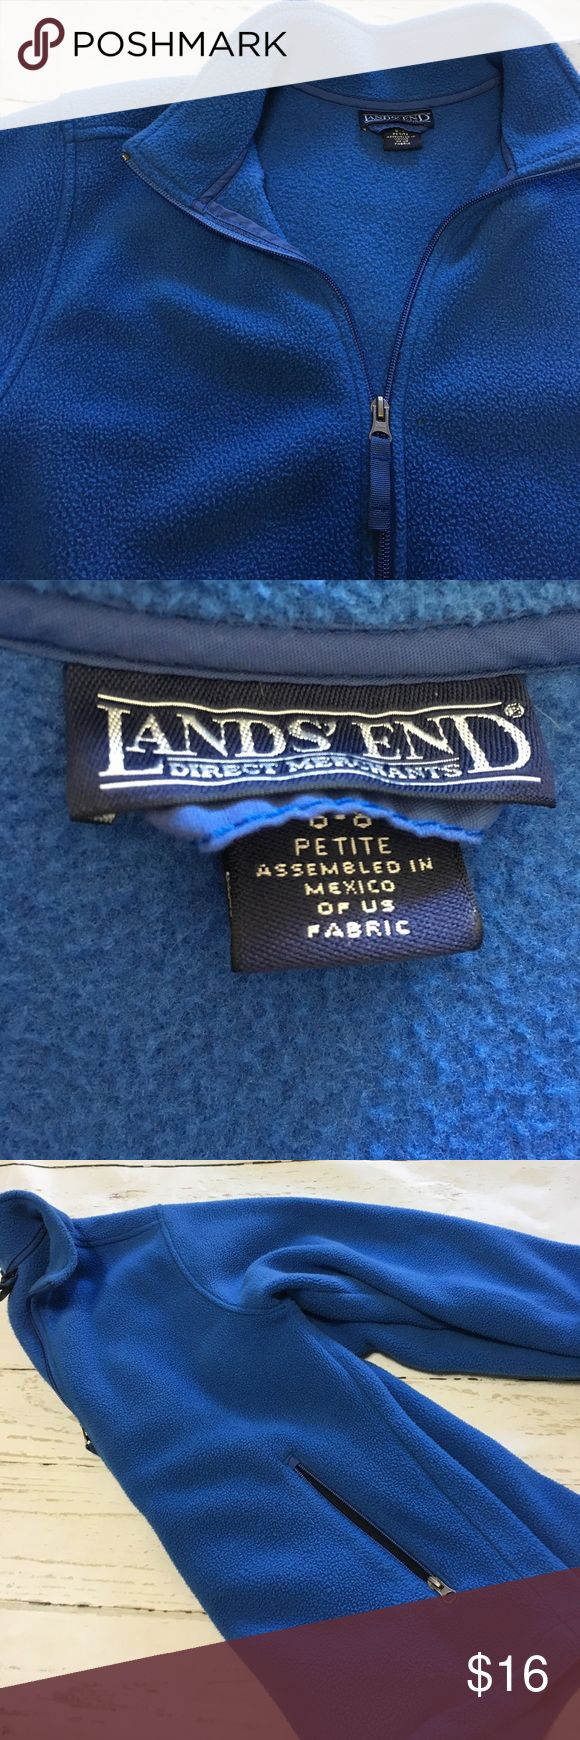 Lands End Small Blue Zip Up Fleece We love these for camping!   This is preloved and though it has no stains or tears it does show the fleece signs of washing so please check pictures.  It is priced accordingly.  Zip up and zip pockets are in perfect condition.  It's a size small Petite (6-8) however it fits a regular 4-6 and Smaller 8 just fine. Lands' End Tops Sweatshirts & Hoodies